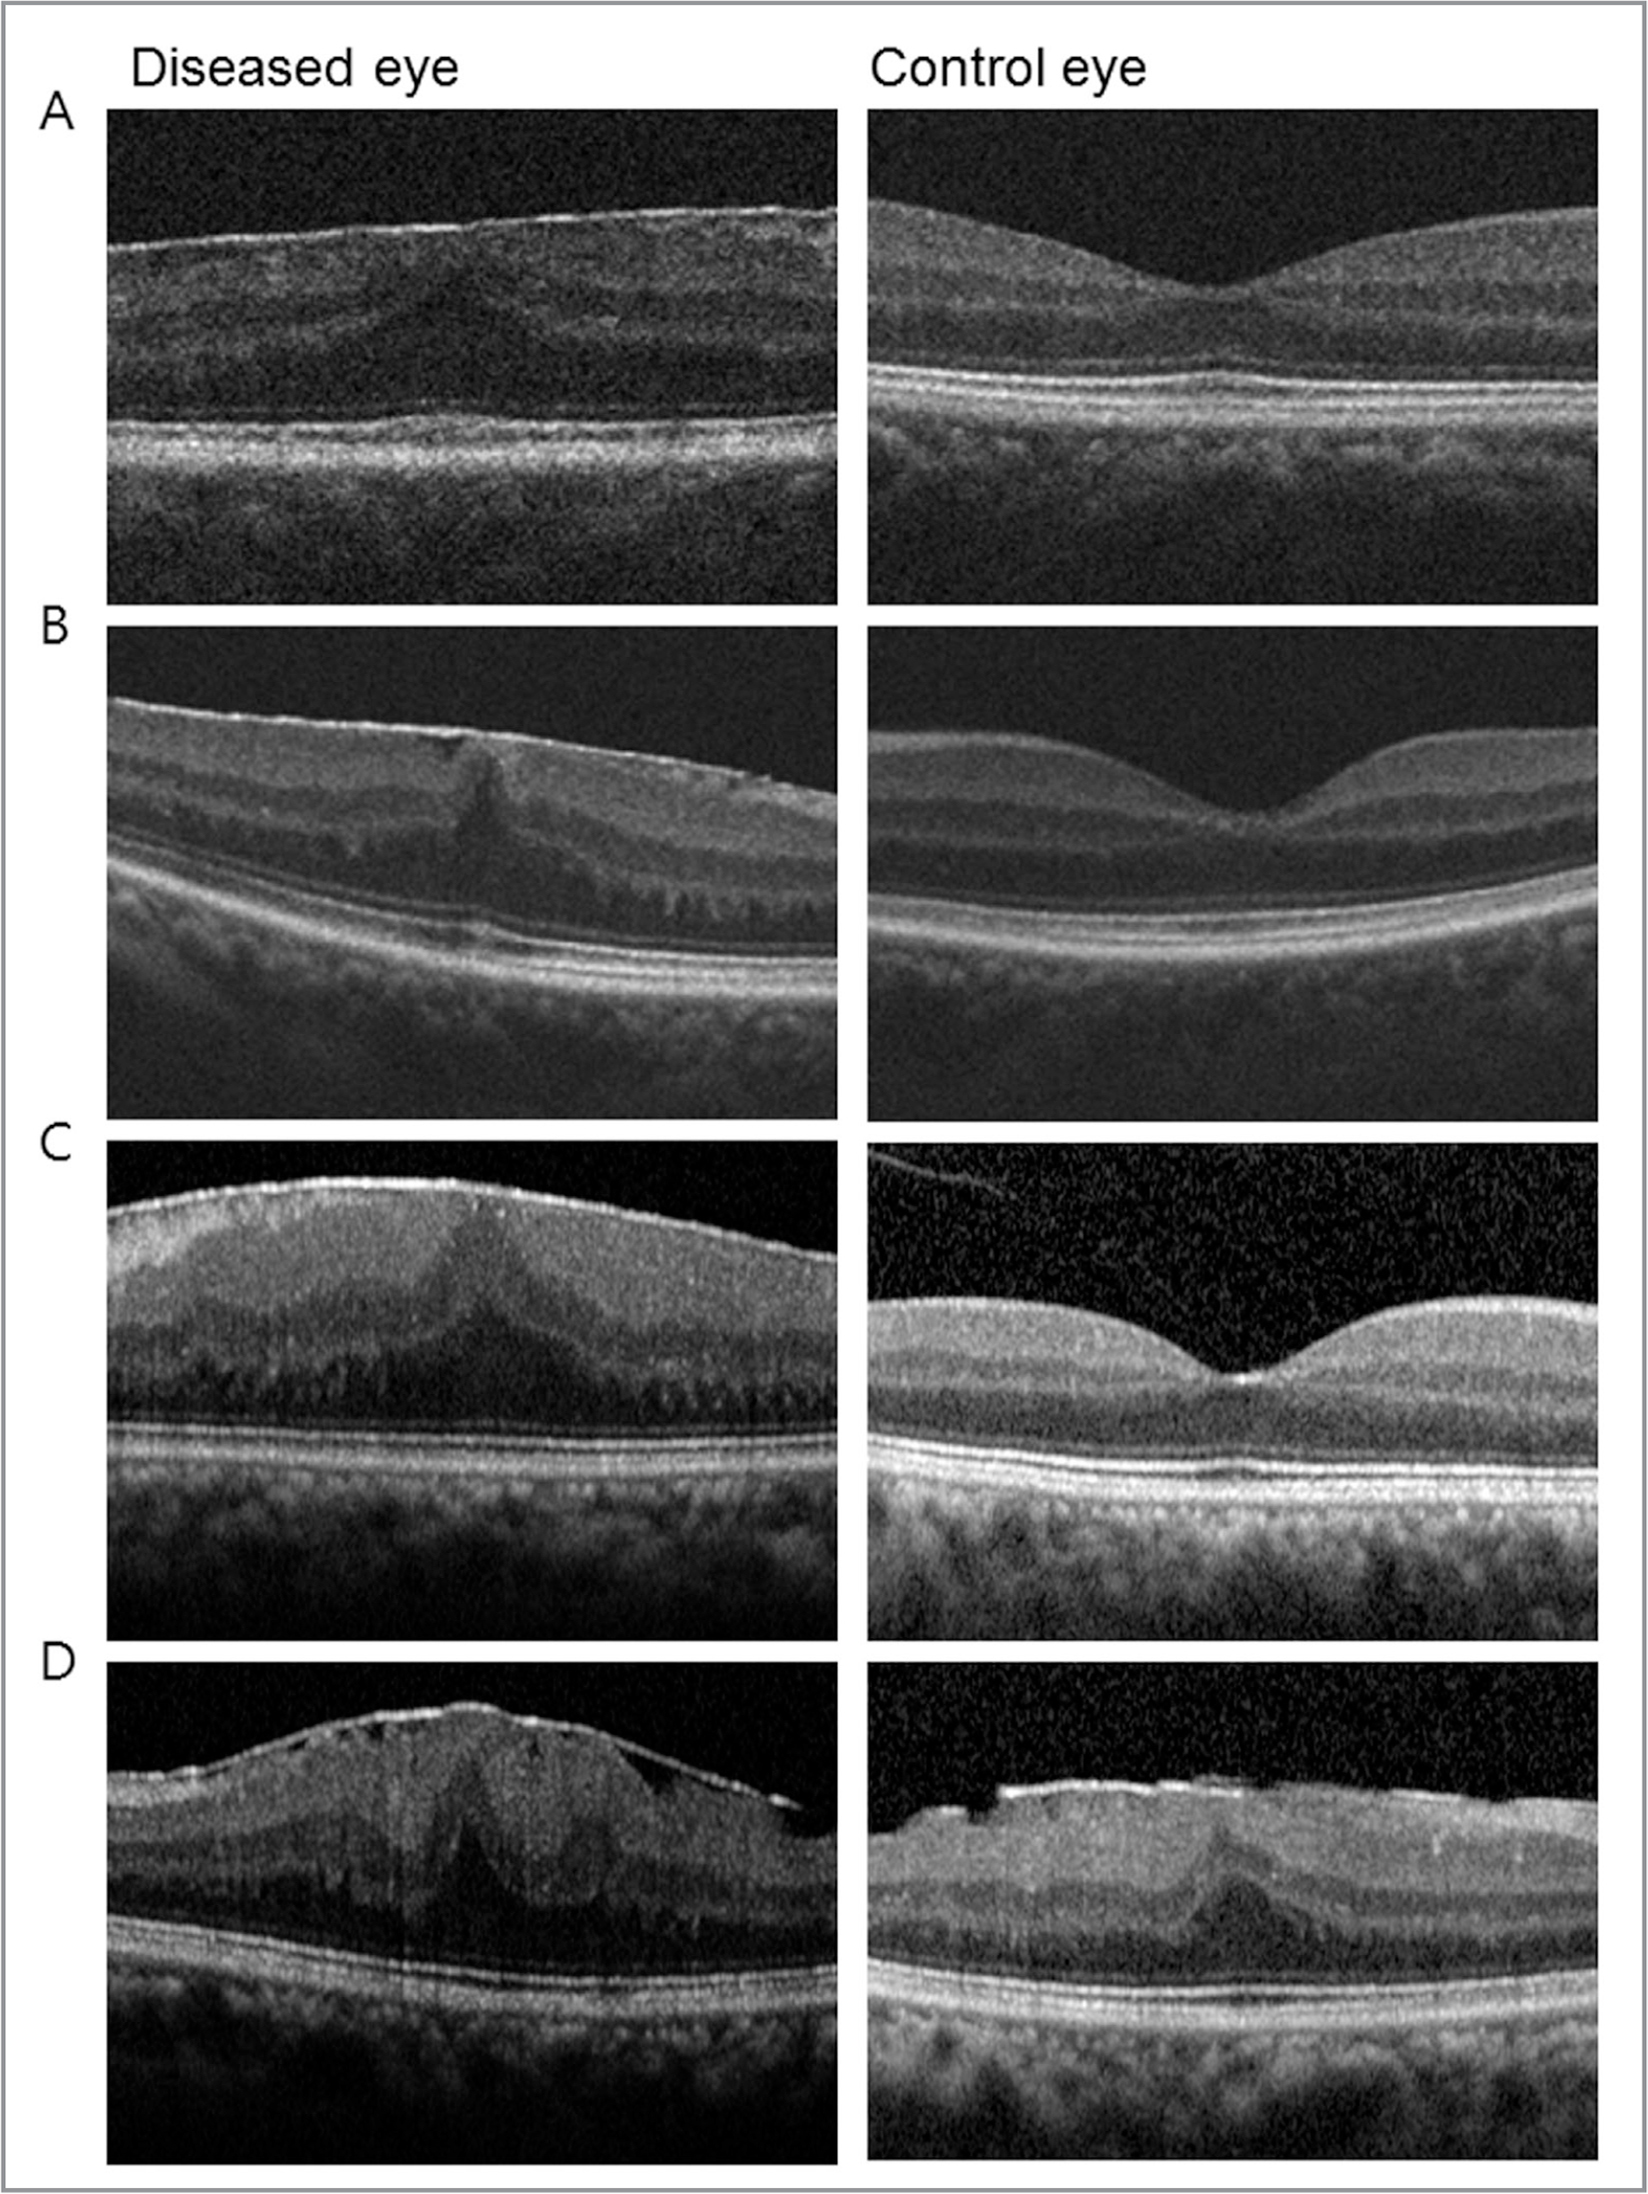 Optical coherence tomography (OCT) findings of patients with epiretinal membrane and macropsia. (A) OCT findings from an 82-year-old male with macropsia. The logMAR best-corrected visual acuity (BCVA) for the eye with macropsia was 20/25. (B) A 74-year-old female with macropsia. Her BCVA was 20/20 for the eye with macropsia. (C) A 74-year-old female without macropsia. Her BCVA was 20/25 for her diseased eye. (D) A 68-year-old female without macropsia. His BCVA was 20/40 for her diseased eye.